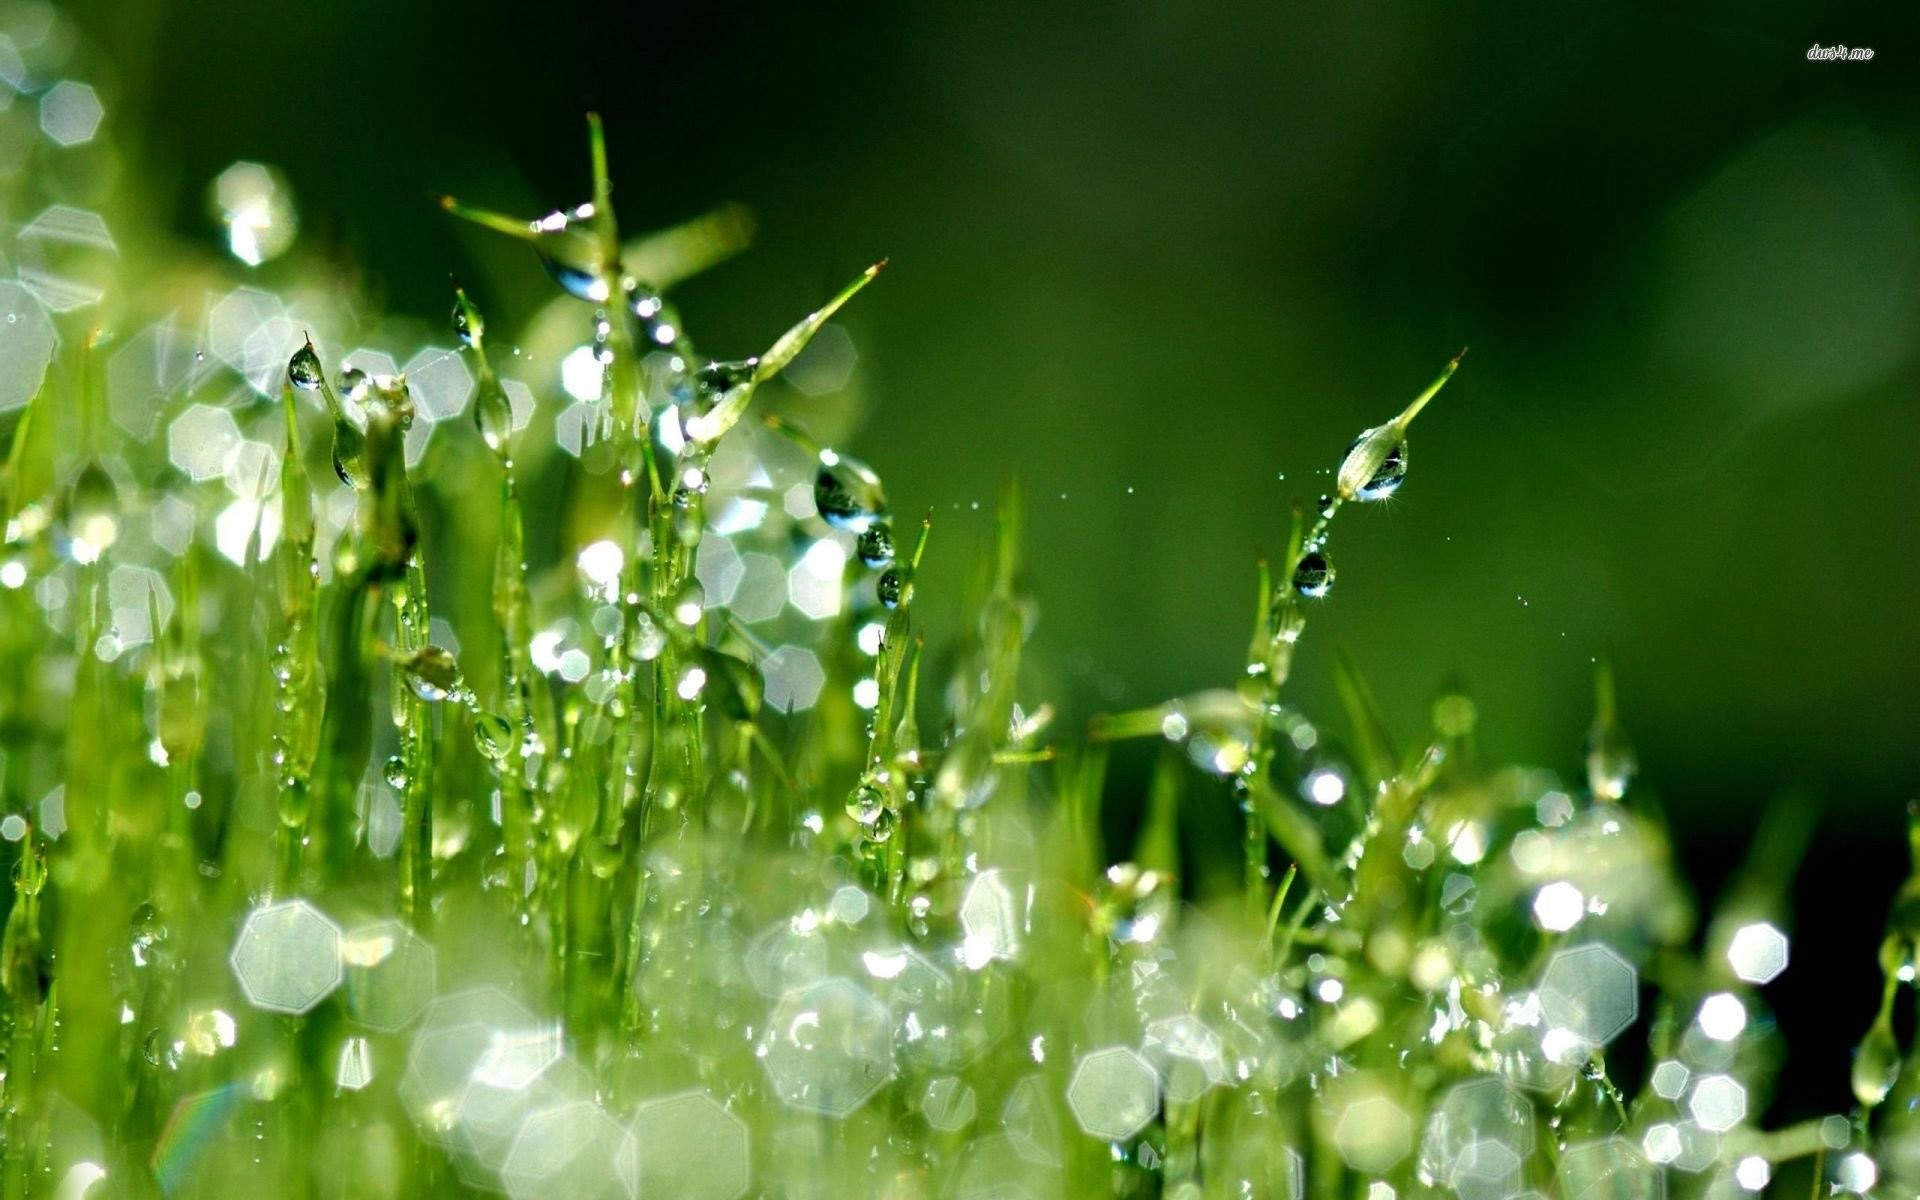 Wallpapers Of Raindrops ①